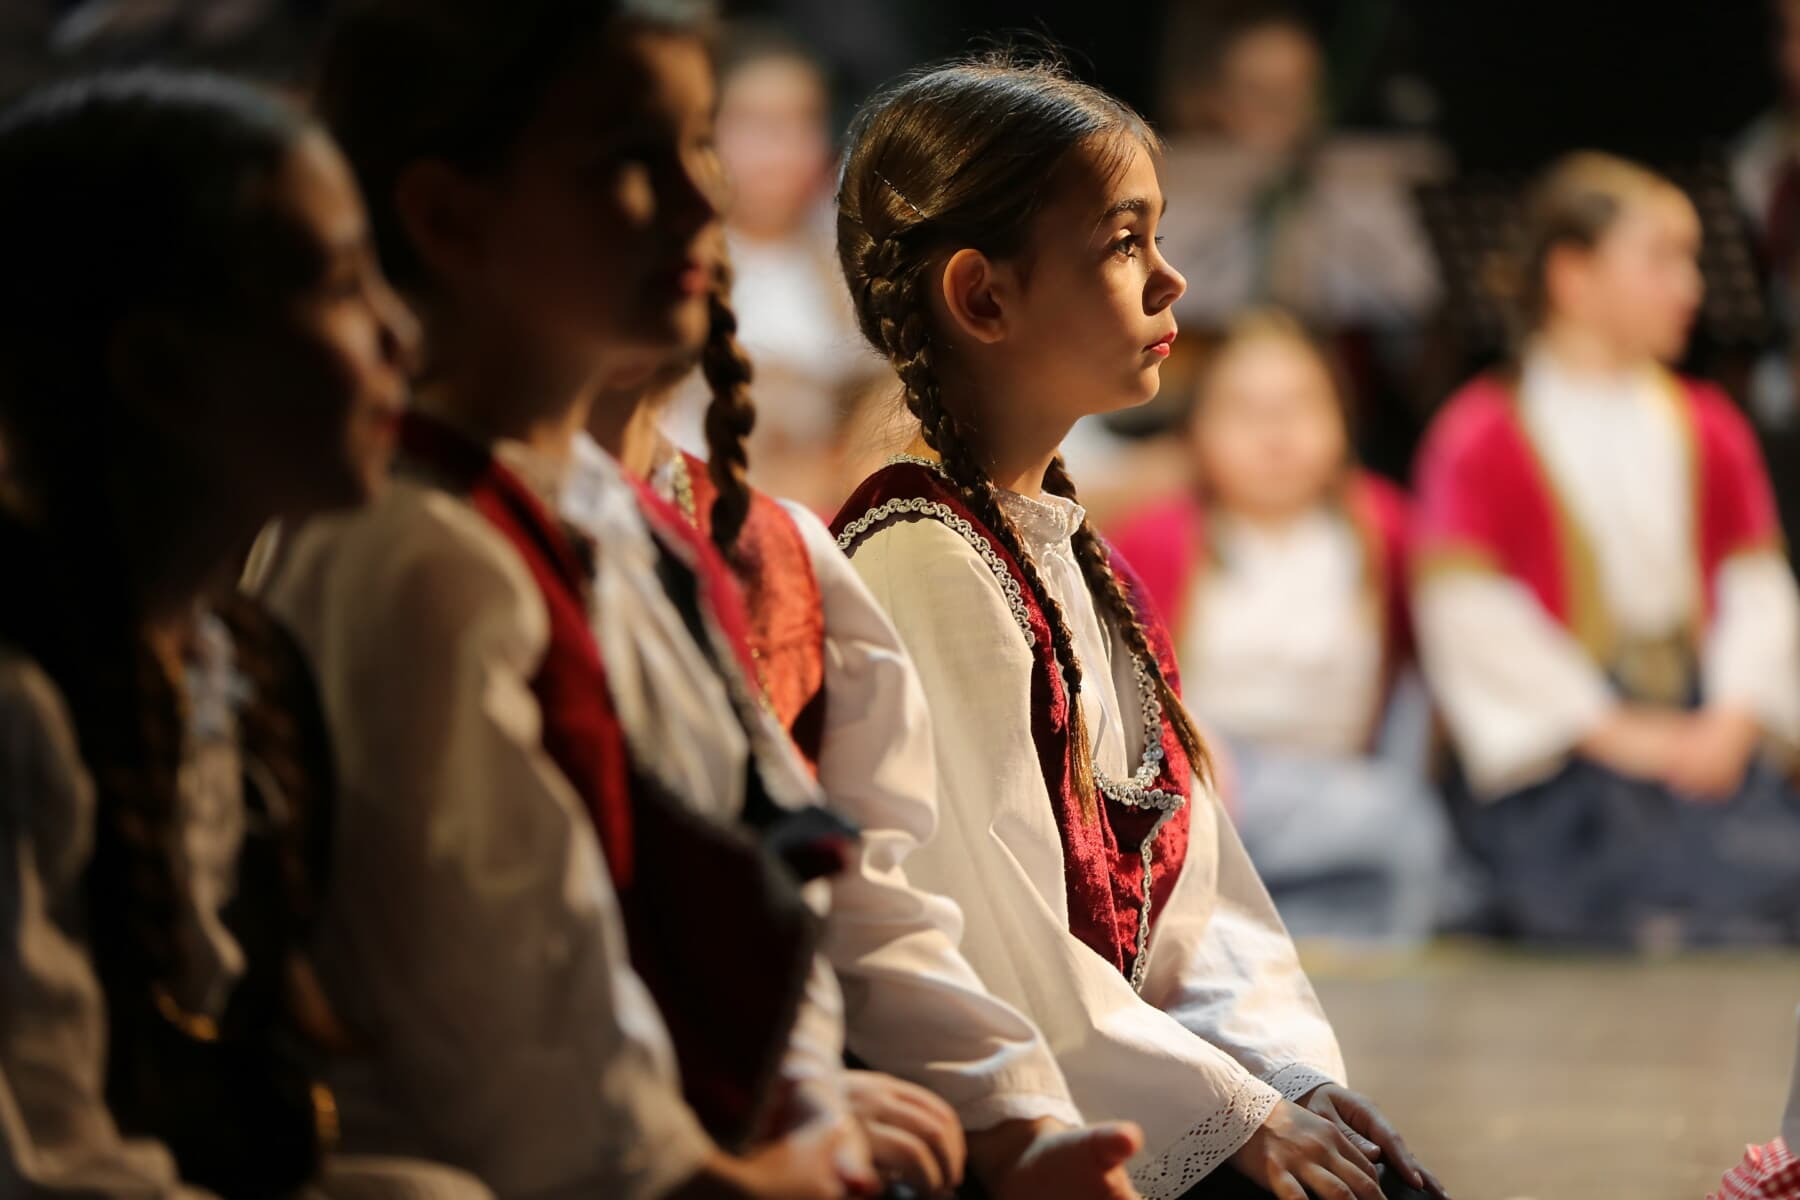 school child, girls, pretty, side view, sitting, concert, people, person, religion, group